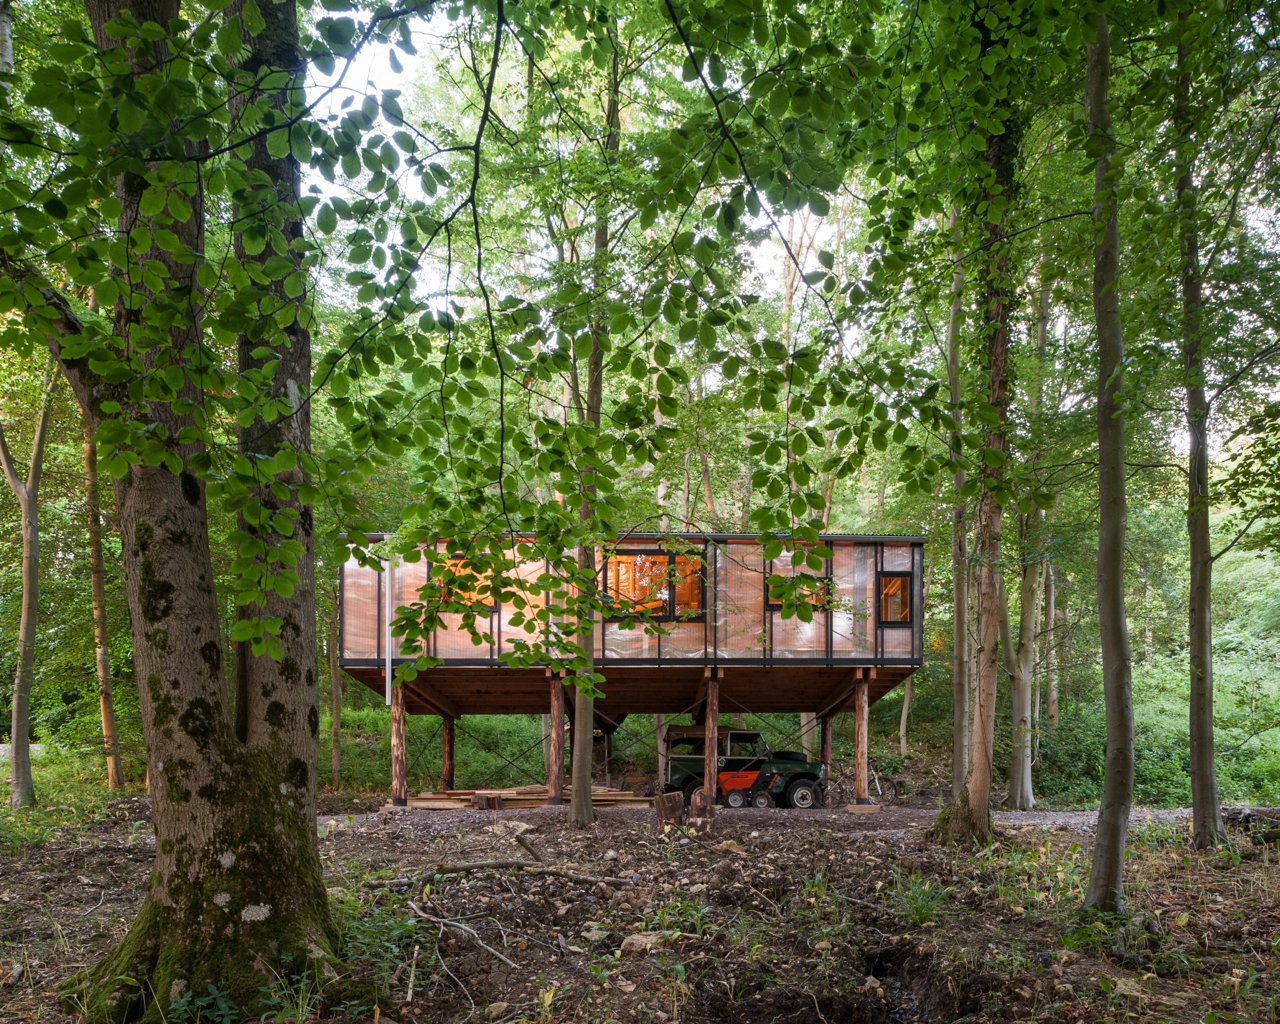 Exterior, Wood, Flat, House, Glass, and Cabin The constraints informed the building design, and were embraced—for example, the cladding that was milled at the end was only enough to partially clad the studio.  Best Exterior Wood Glass Cabin Flat Photos from 10 Buildings We Love by Piers Taylor